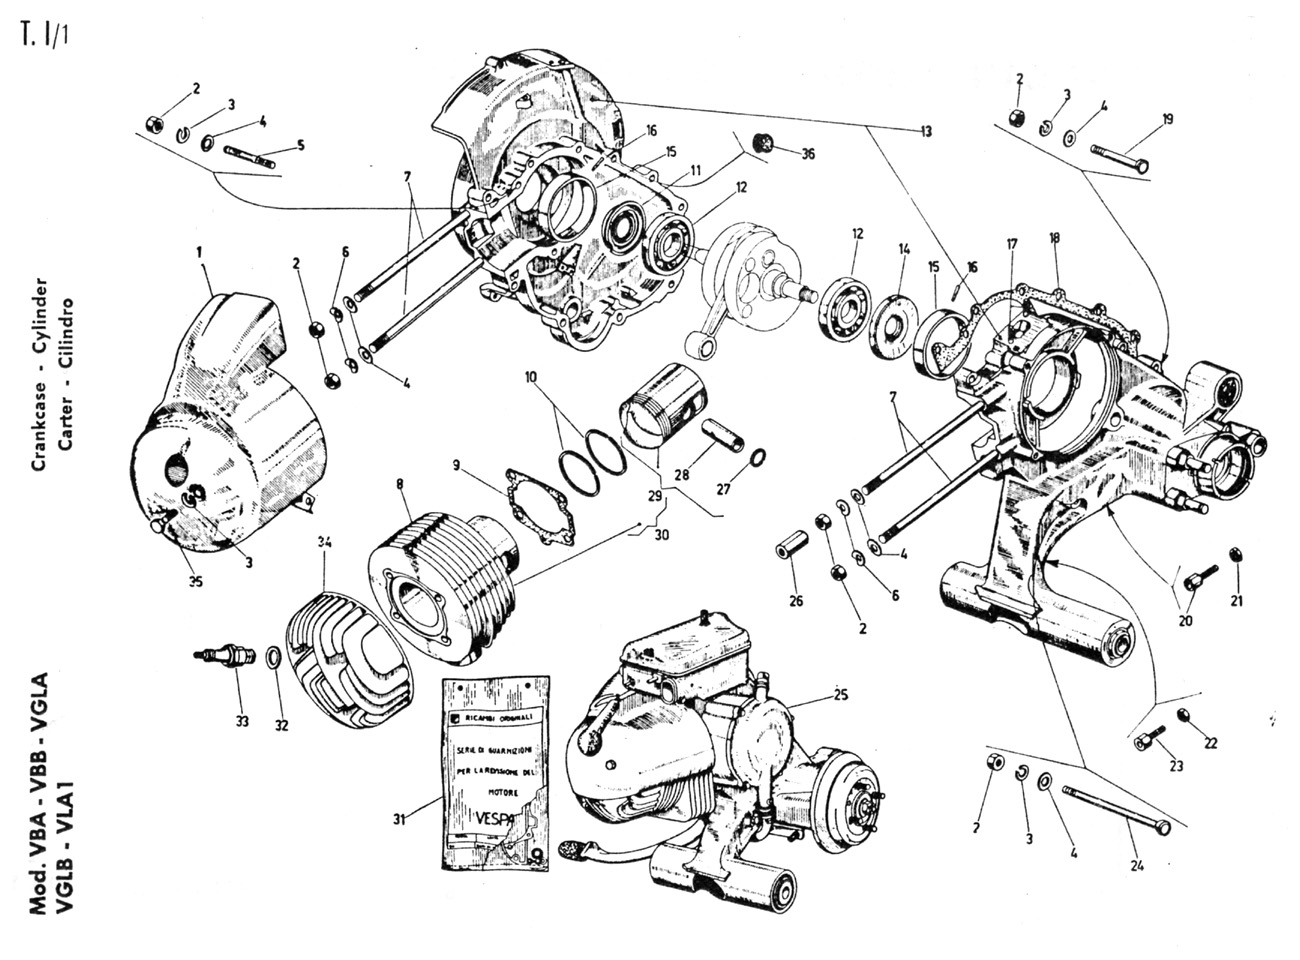 vespa vbb wiring diagram with Wiring Diagram Vespa Excel 150 on Vespa Sprint Wiring Diagram also Farmall Electronic Ignition Wiring Diagram together with Vespa Piaggio 150 Wiring Diagrams moreover Lambretta Headset Wiring Diagram additionally Vespa Et4 Exploded Diagram.